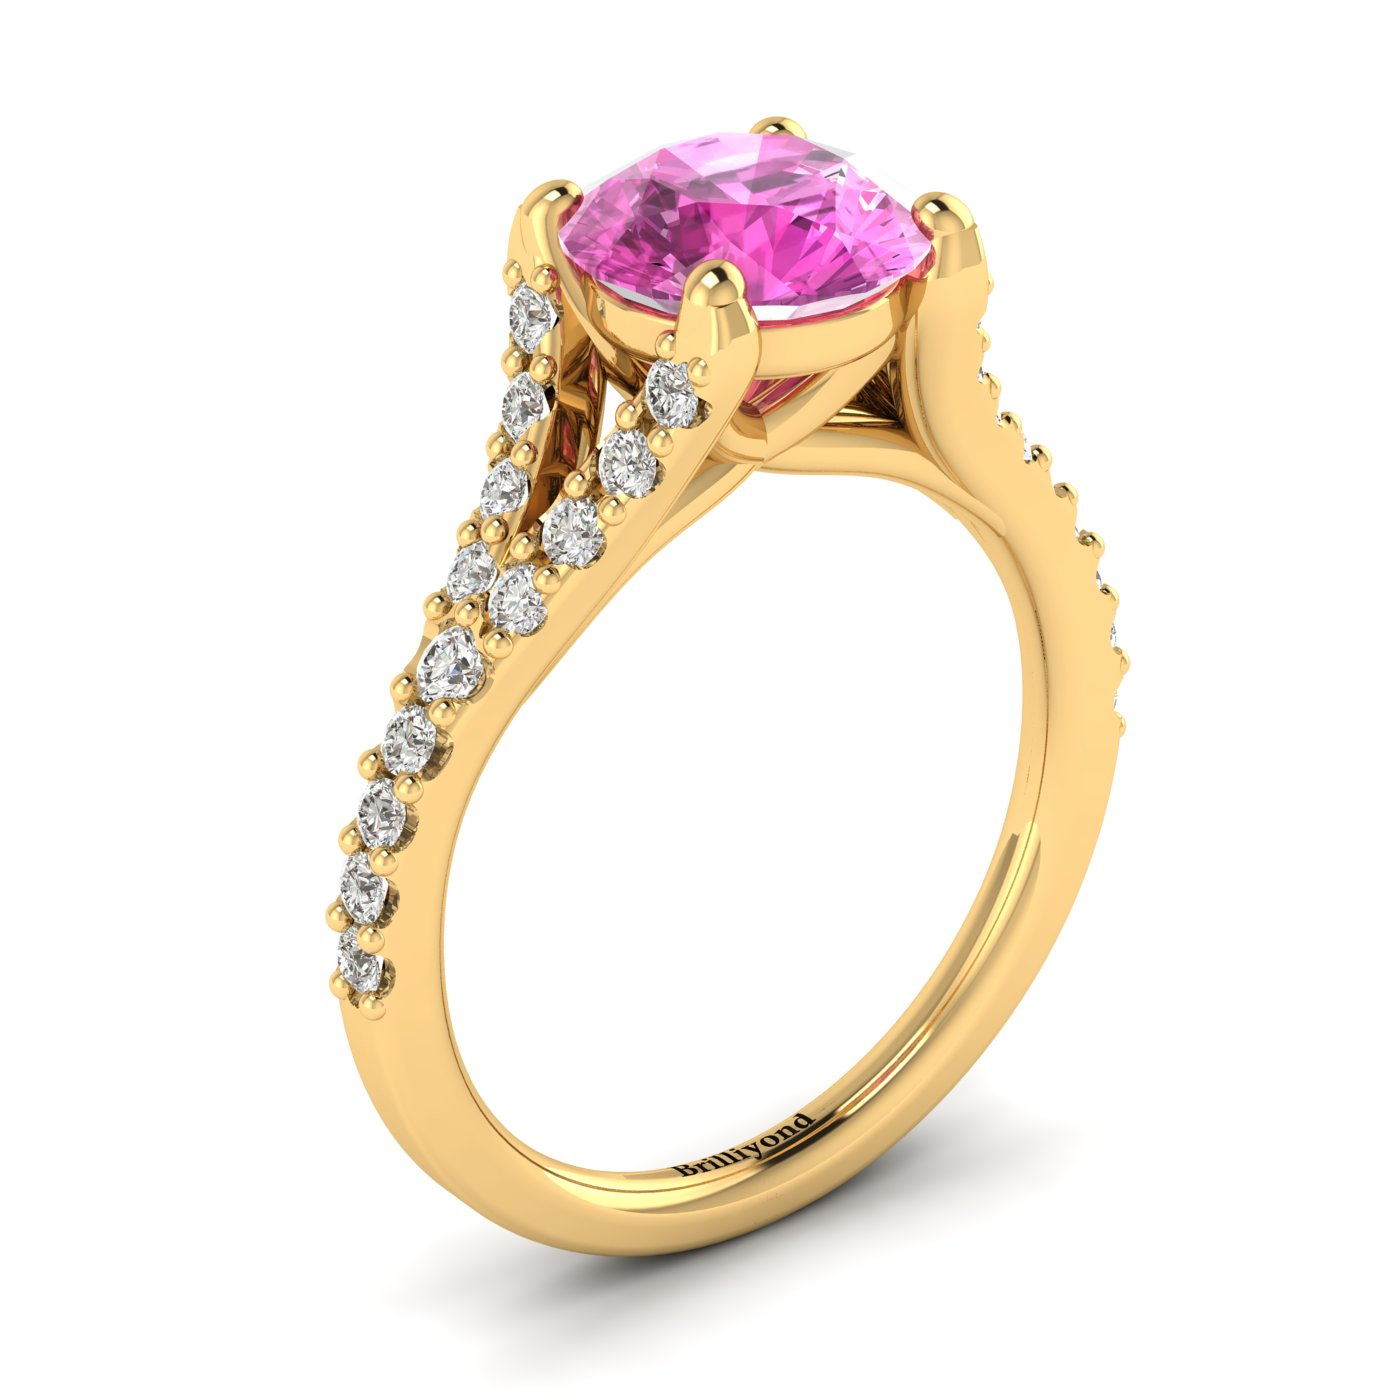 18k yellow gold engagement ring in a spectacular pavé split shank setting.